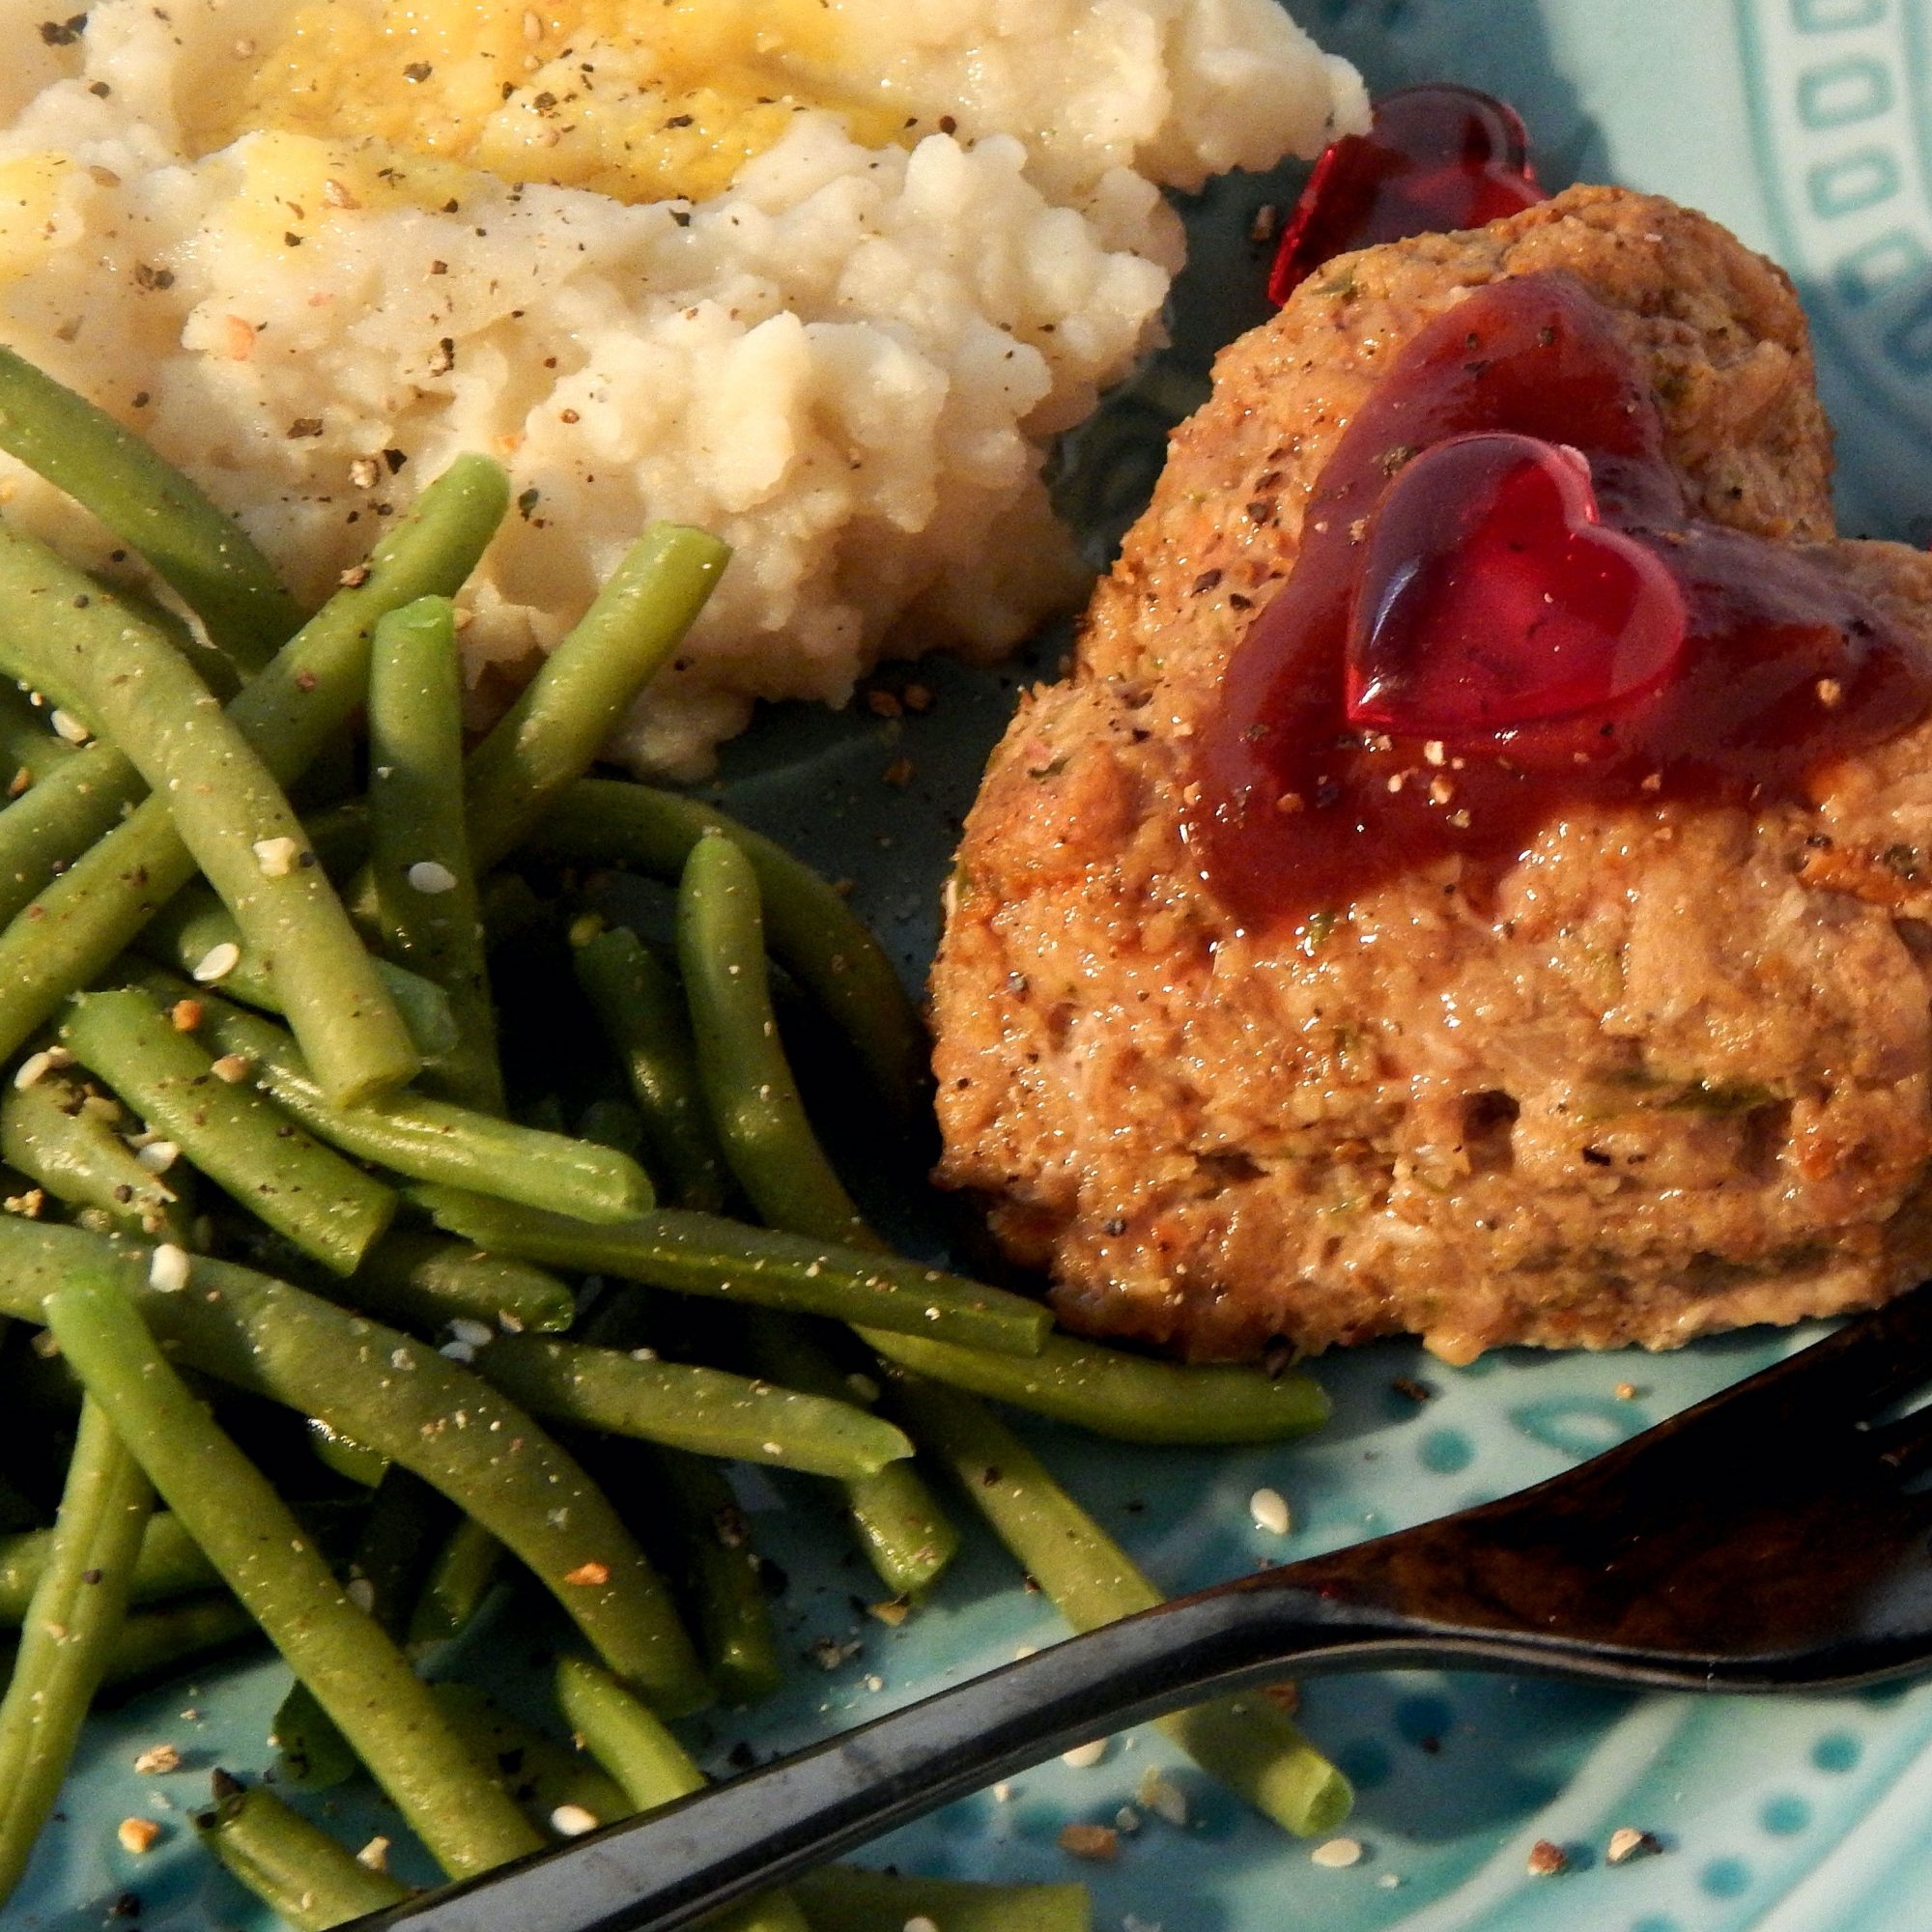 Japanese-Style Meatloaf with green beans and mashed potatoes